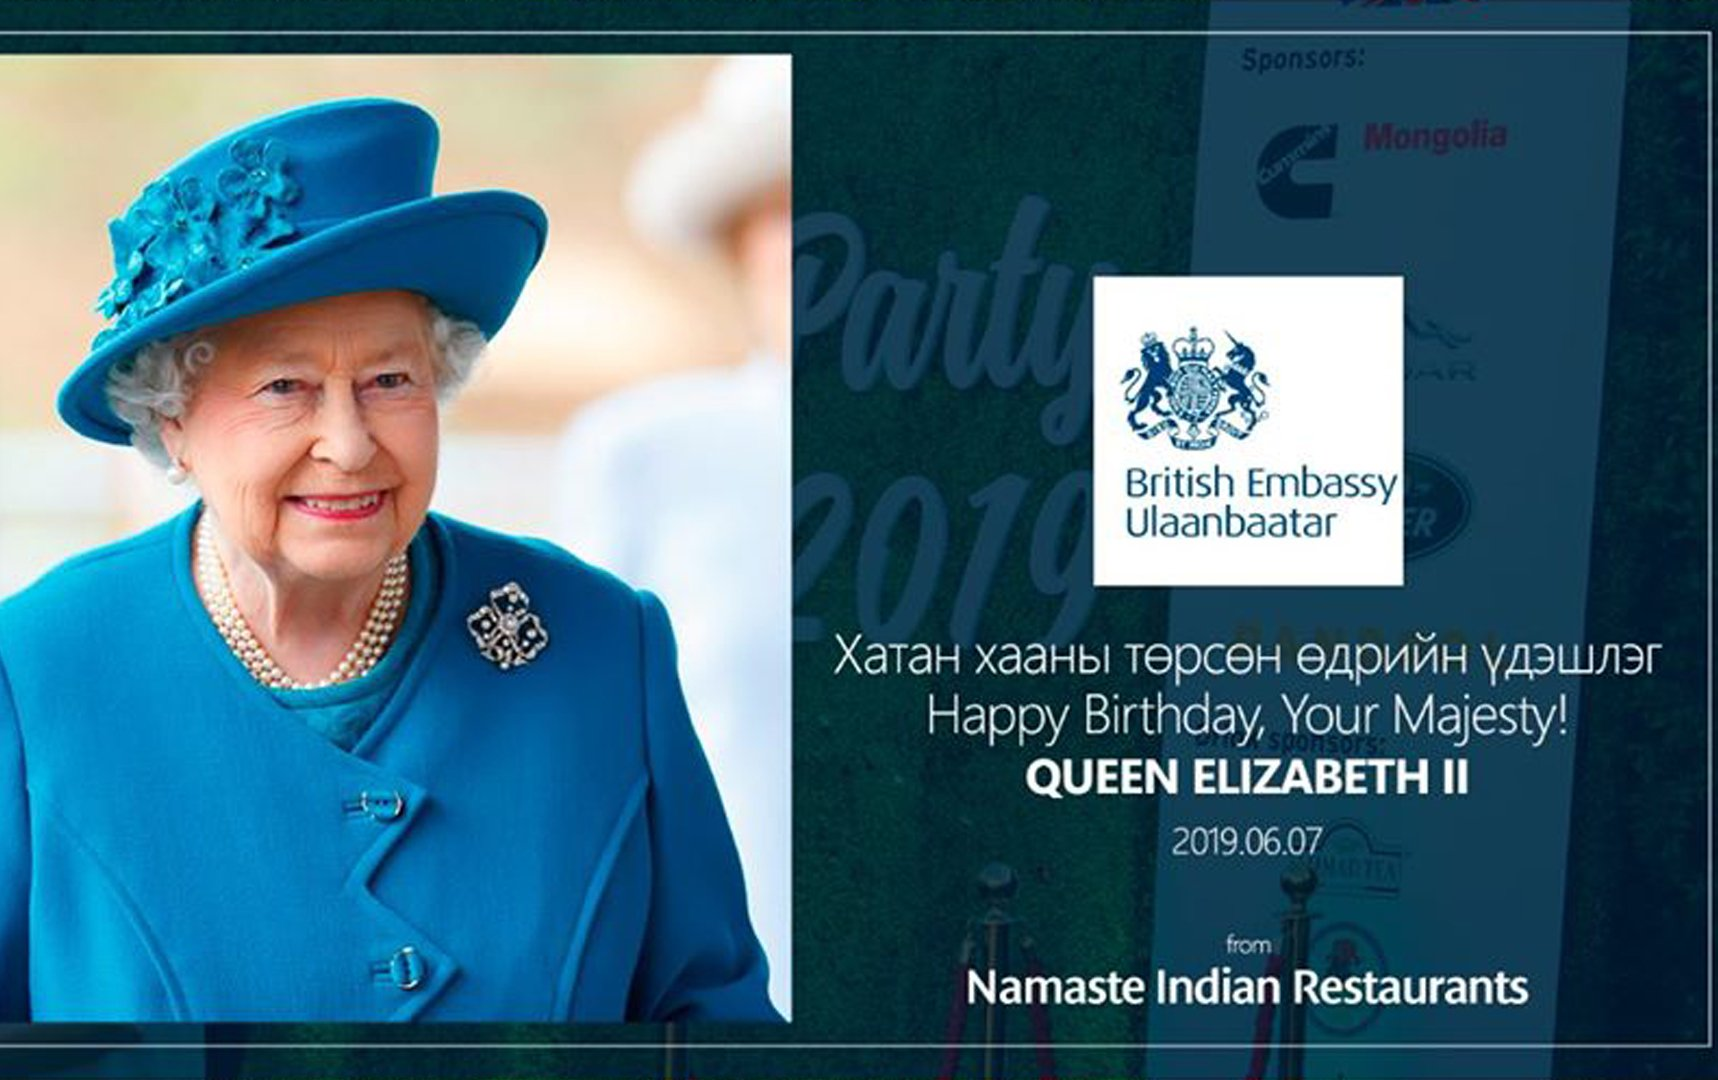 Queen Elizabeth II birthday party.